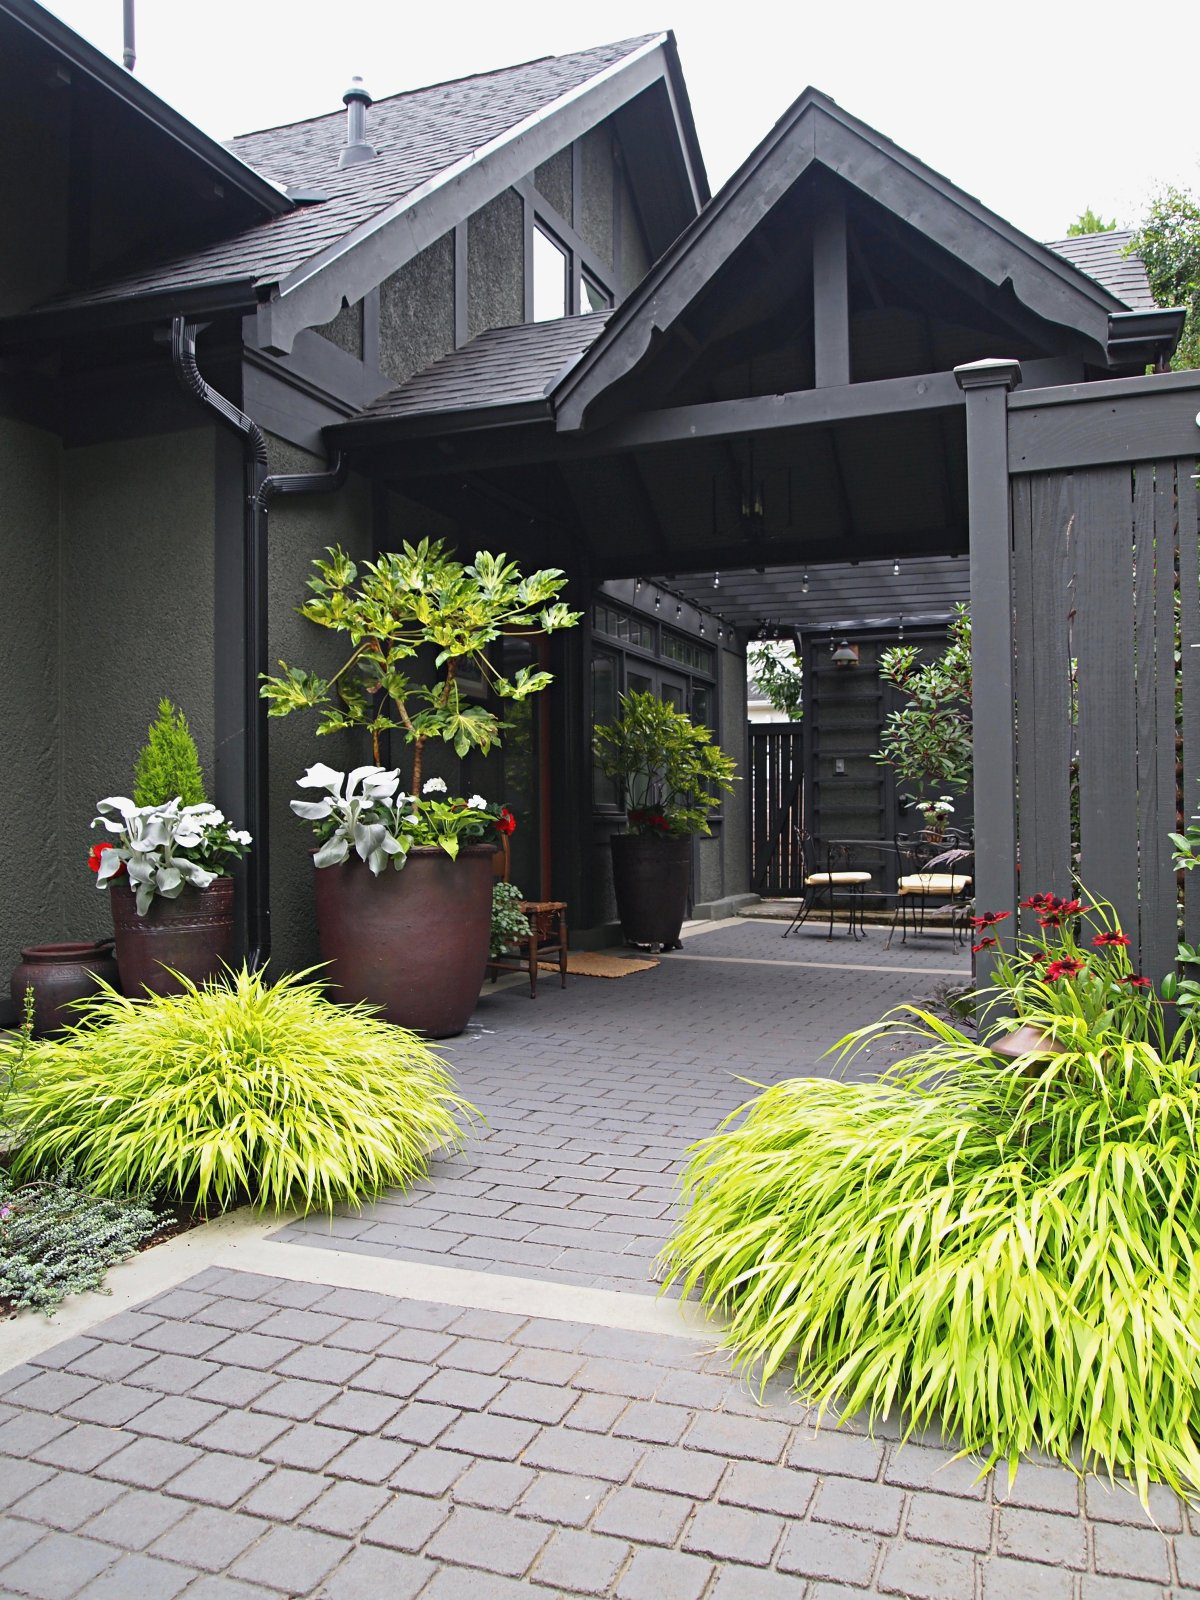 SYMMETRICAL PLANTINGS SIGNIFY A THRESHOLD AND WELCOME GUESTS IN